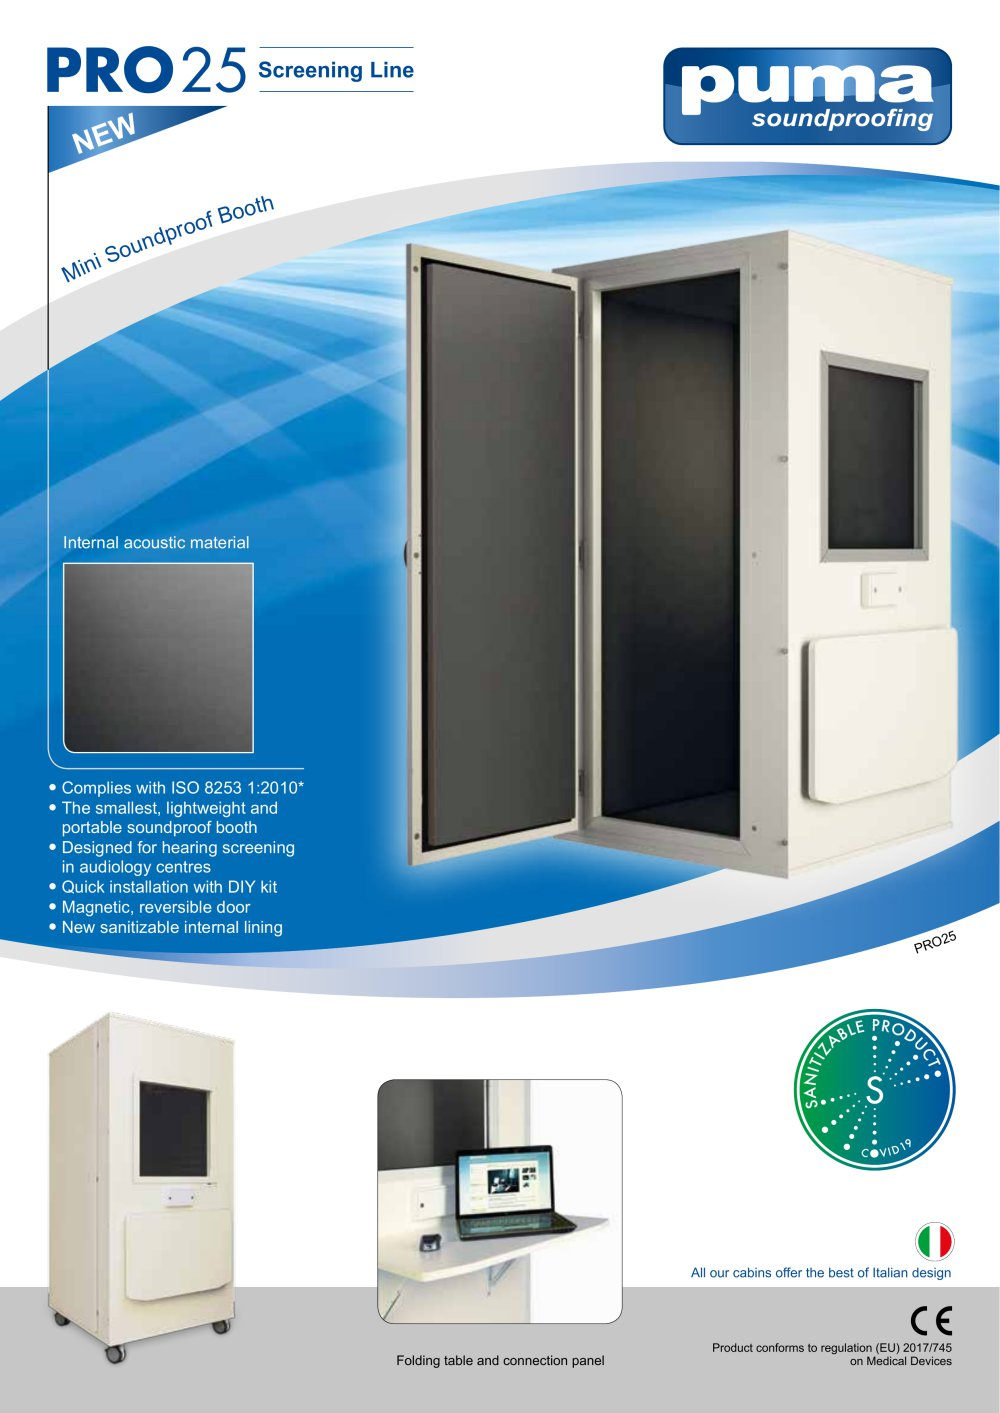 Pro25 Screening Line Puma Soundproofing Pdf Catalogs Technical